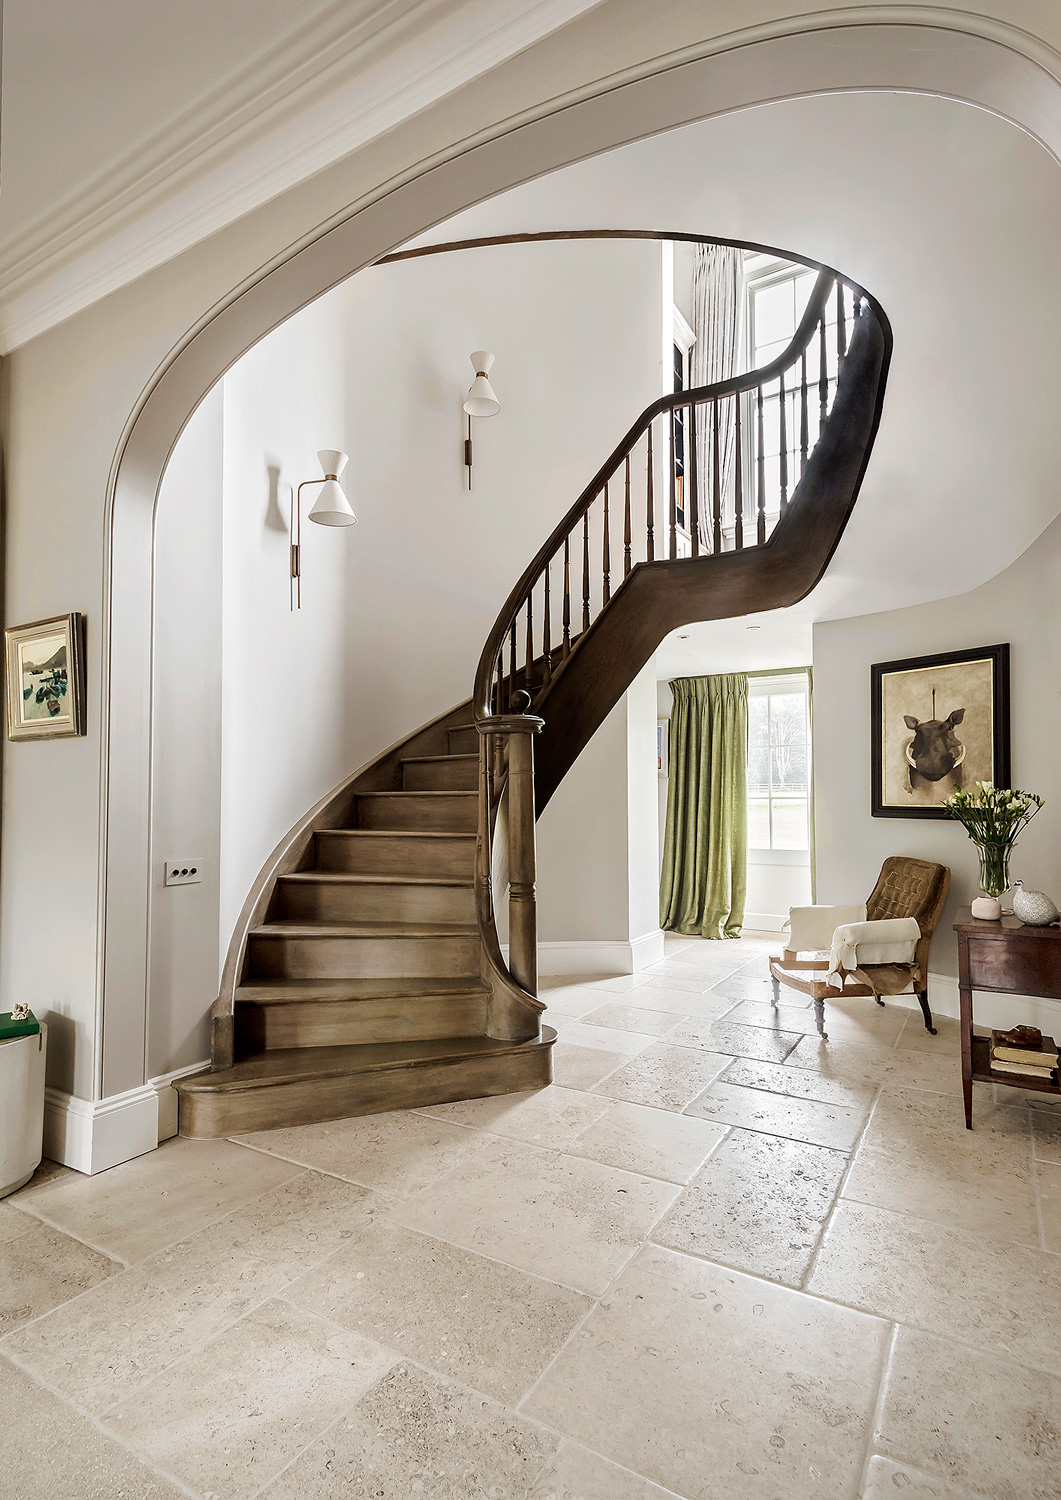 Staircase and hall – interior design by Eadie & Crole